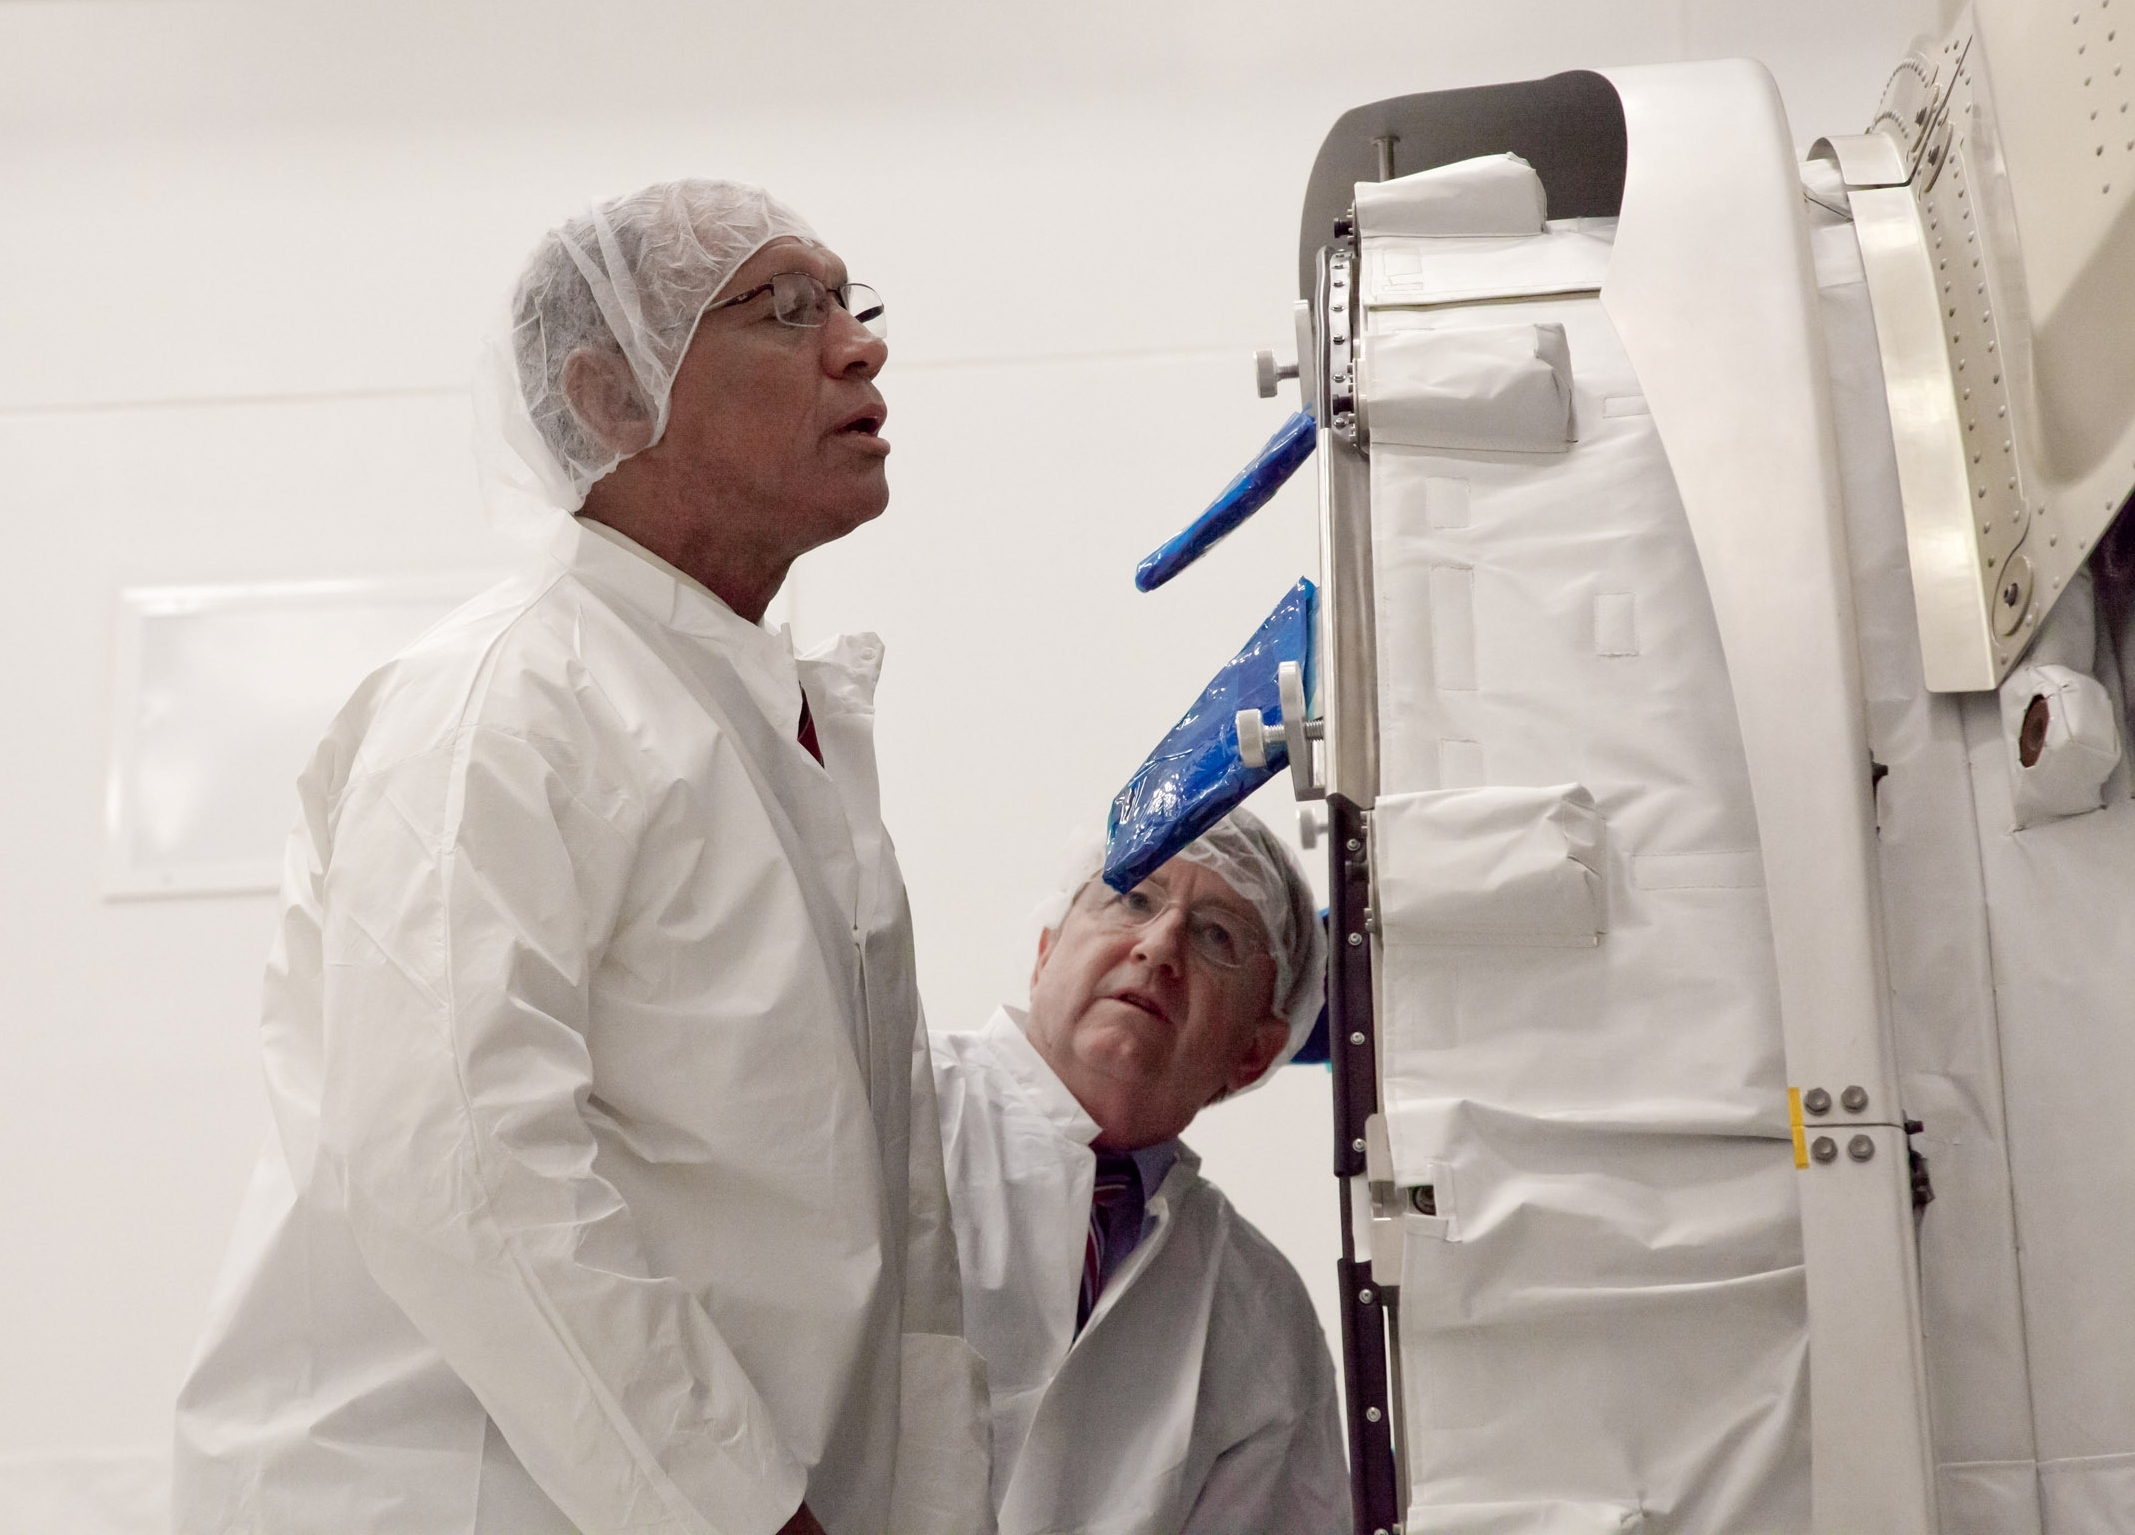 NASA Administrator Charles Bolden Visits Cygnus at Wallops Flight Facility